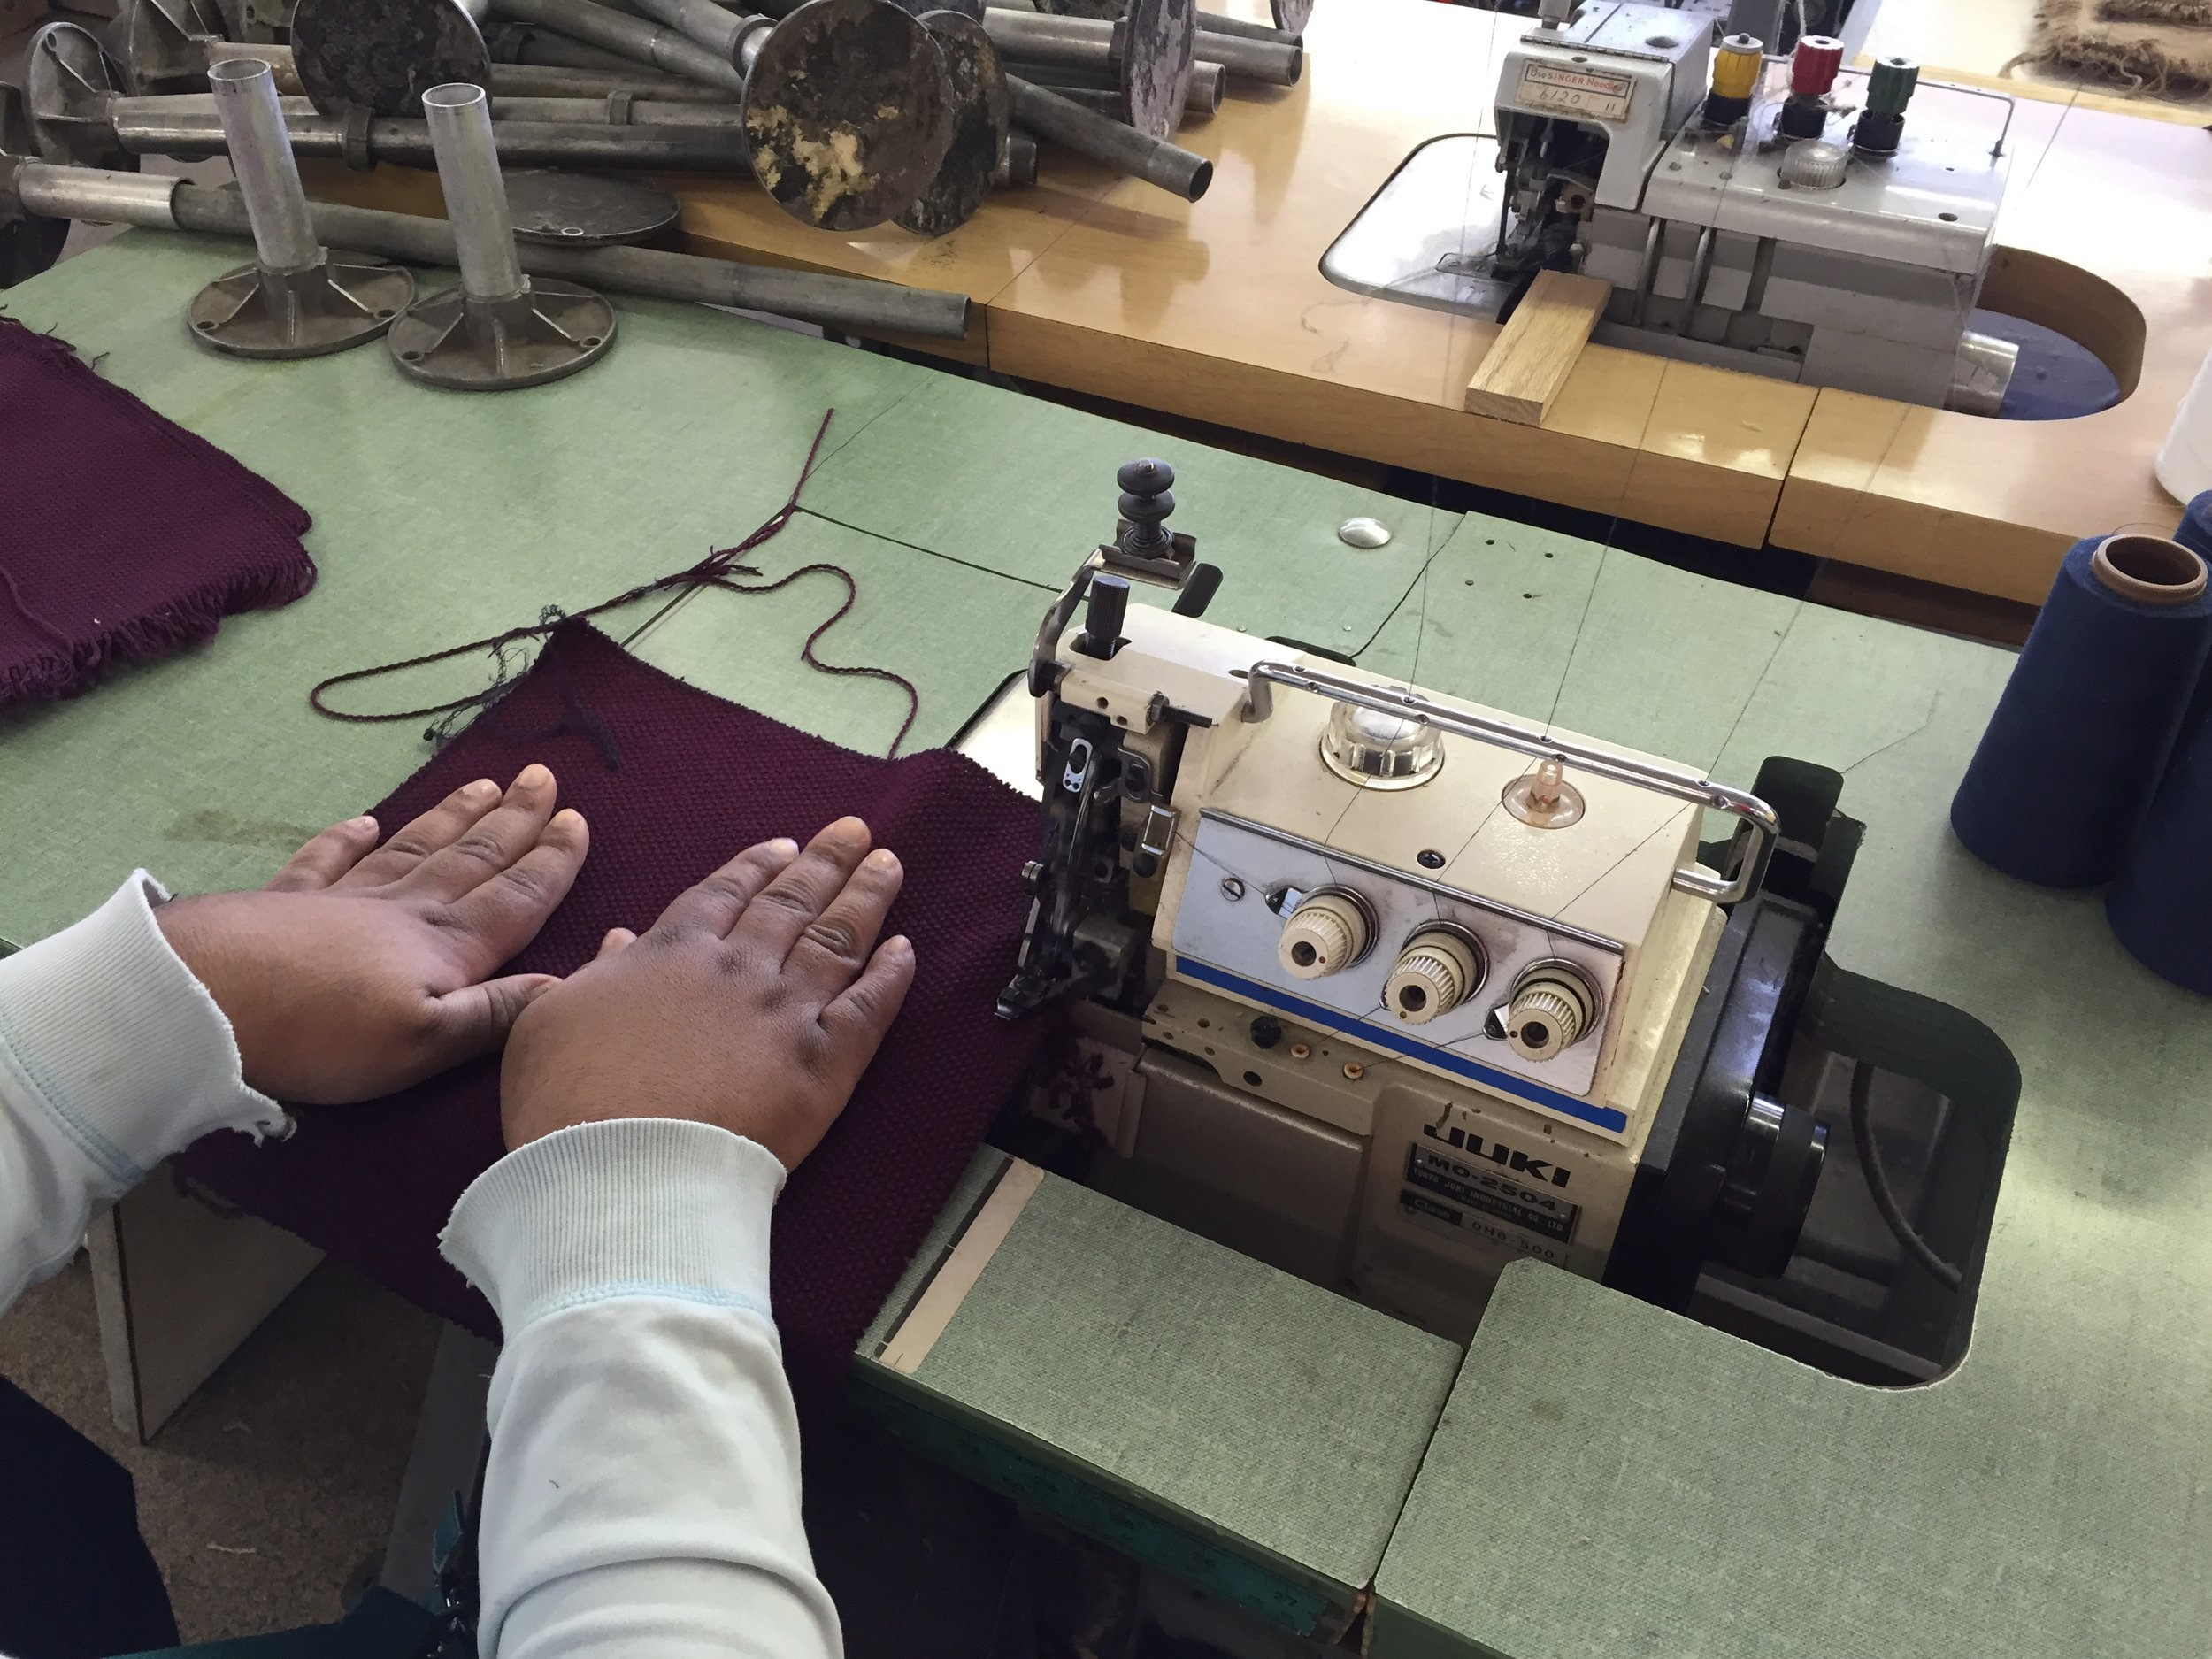 Using the serger